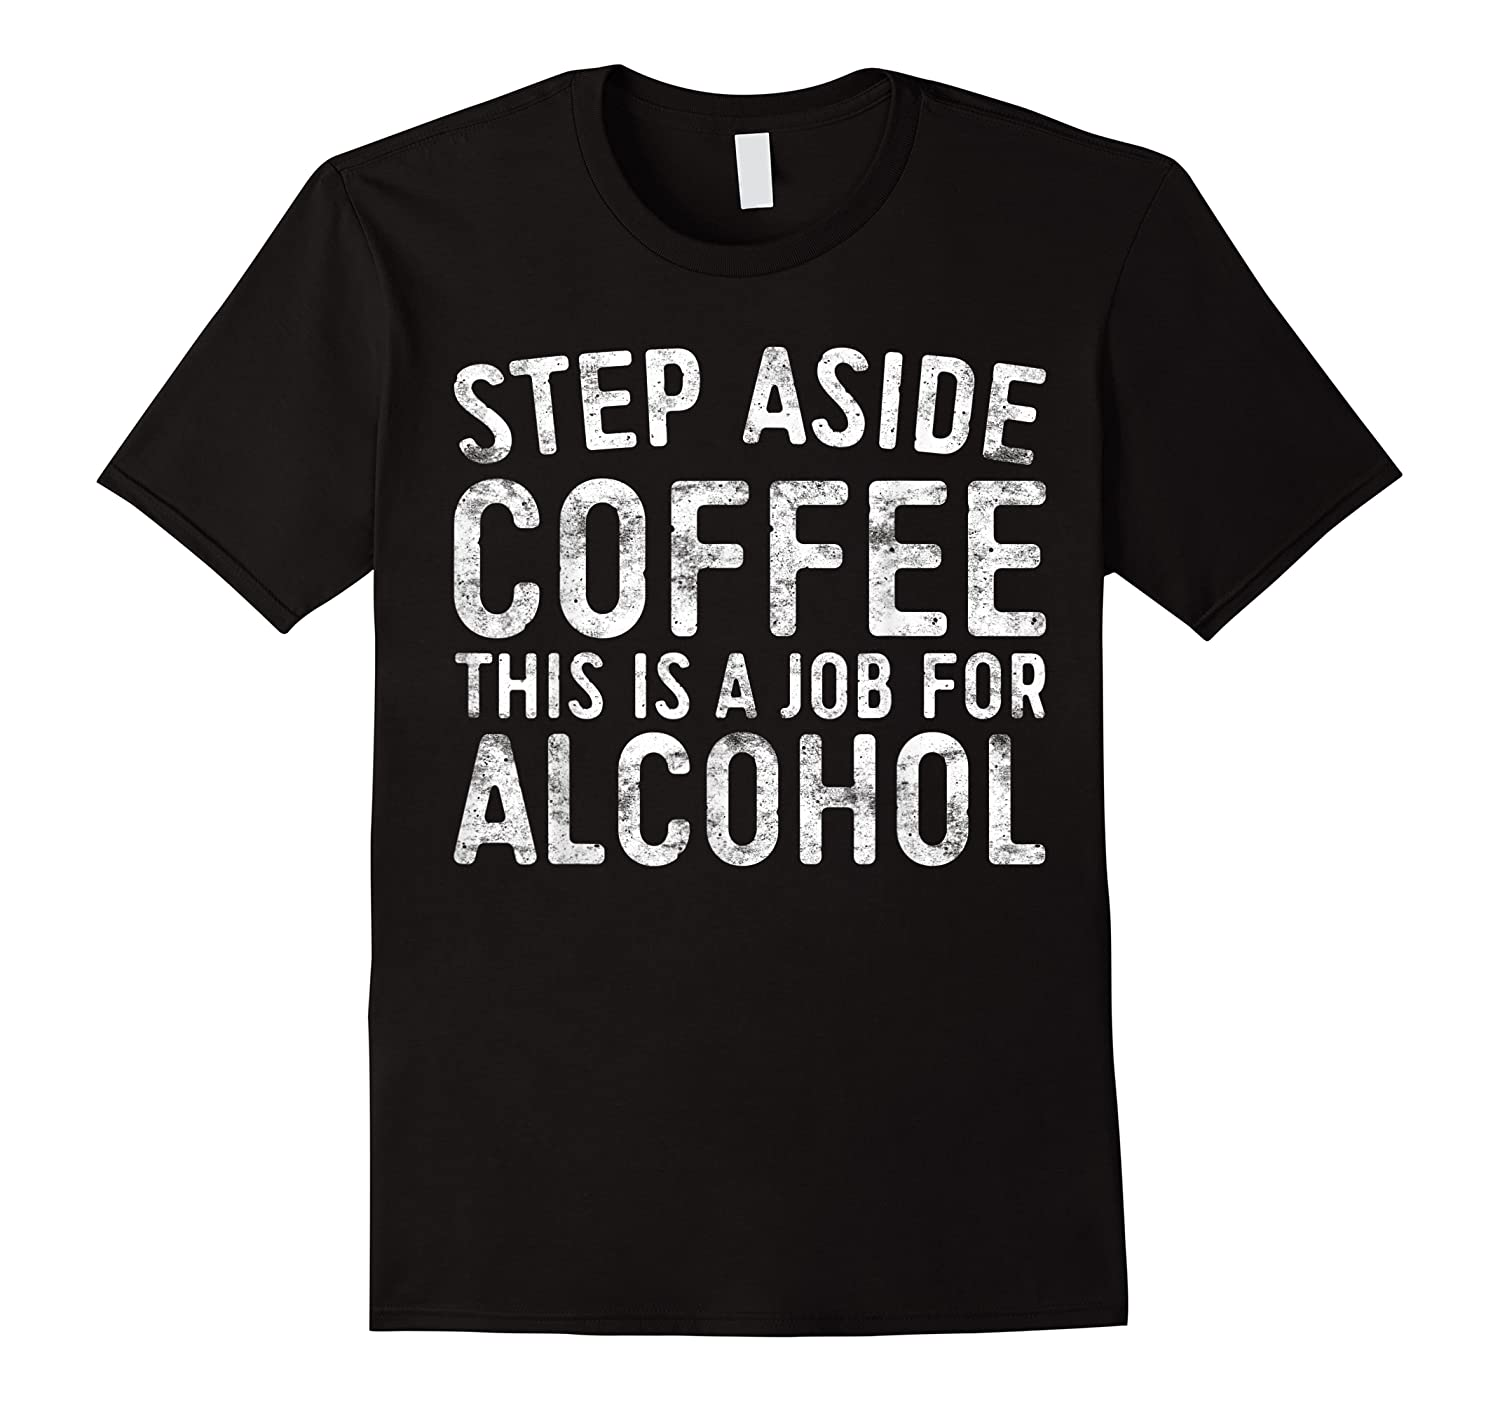 Step Aside Coffee This Is A Job For Alcohol T-shirt Drinking